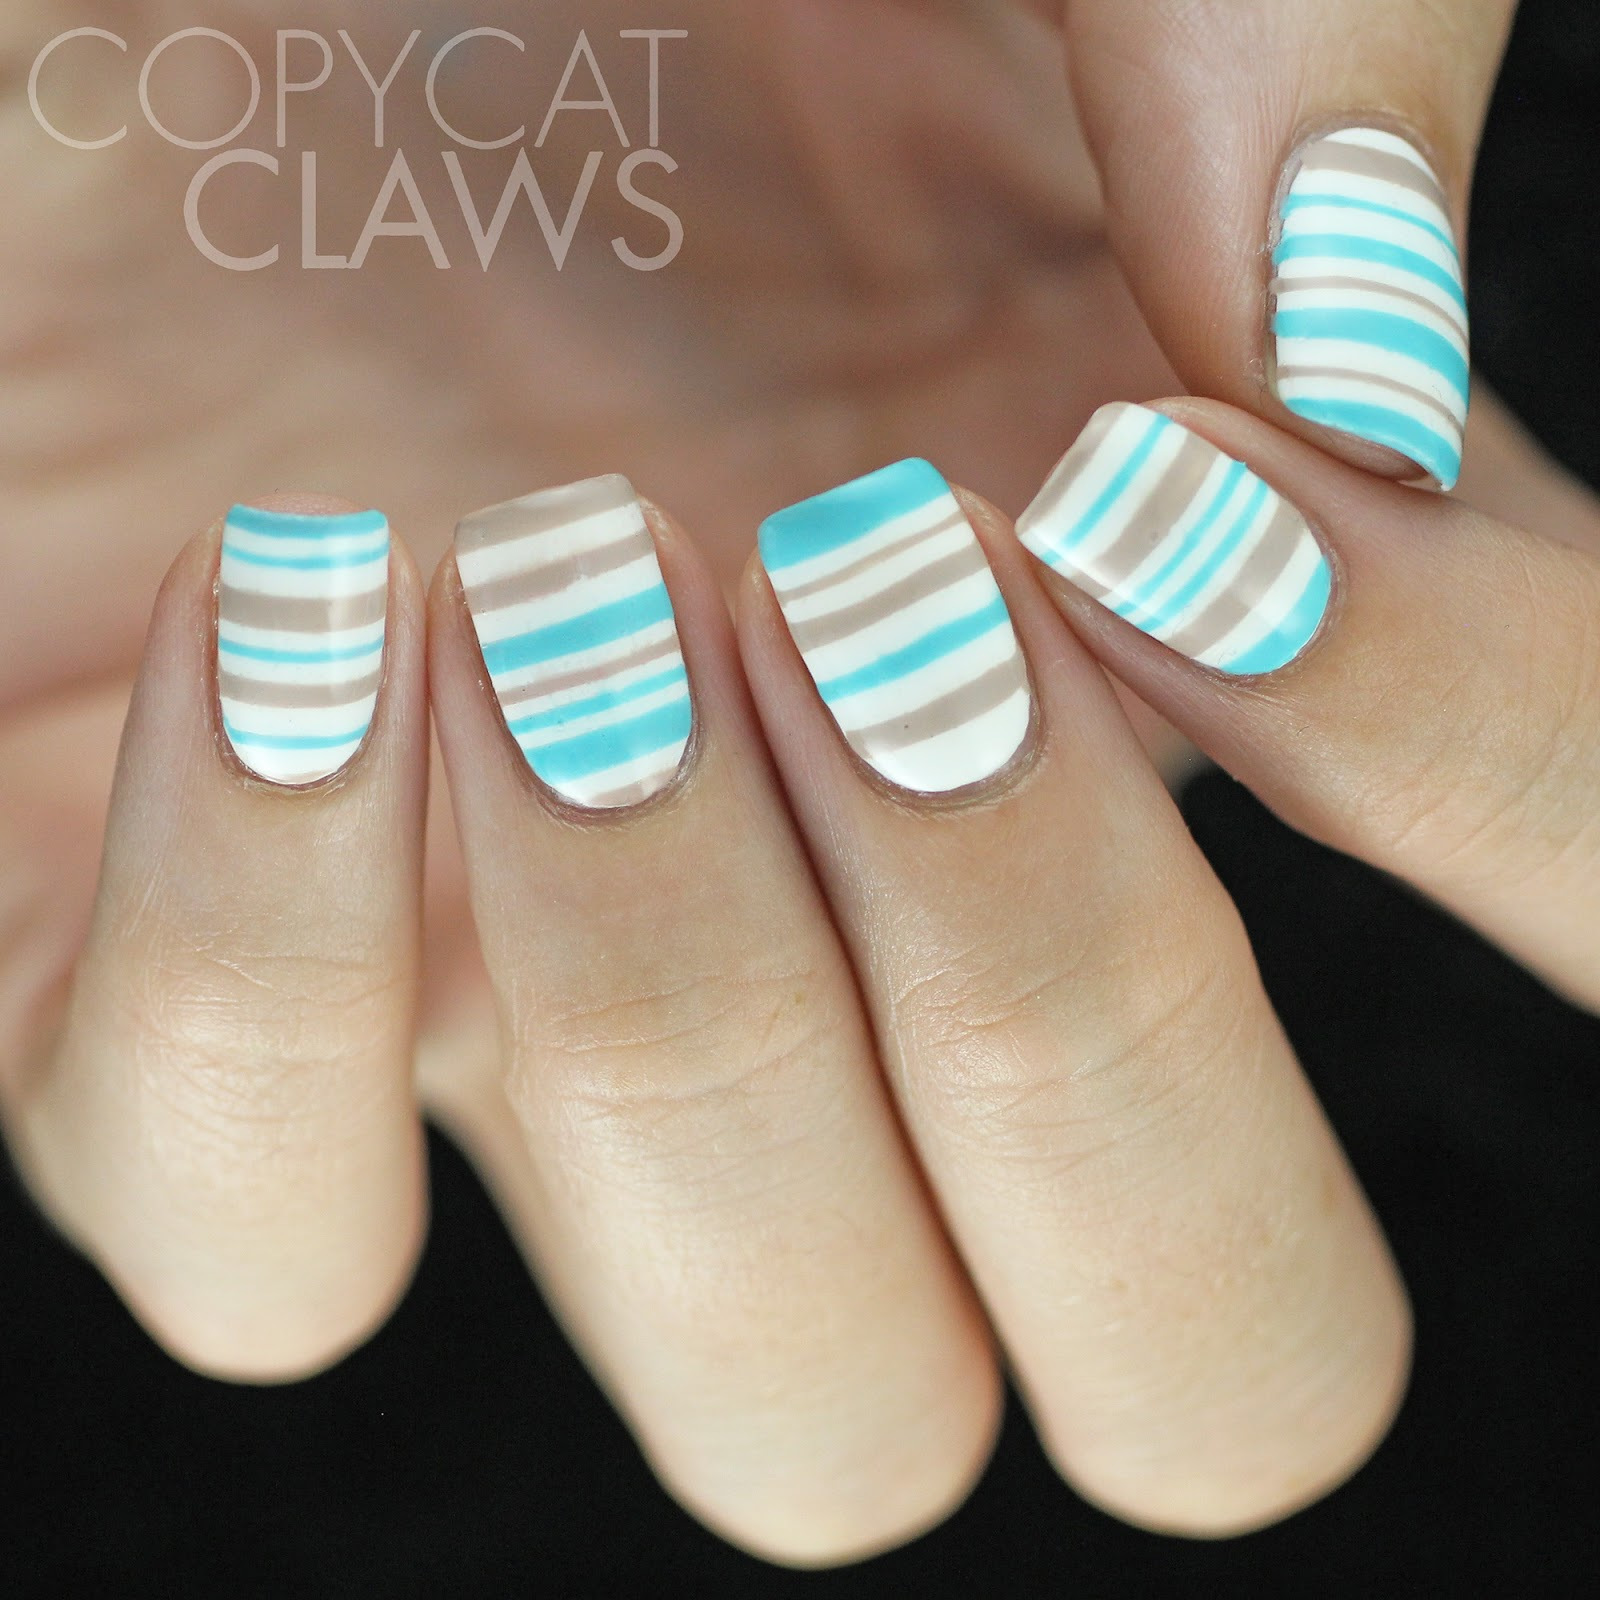 Copycat Claws Blue Color Block Nail Art: Copycat Claws: Uneven Striped Summer Nails